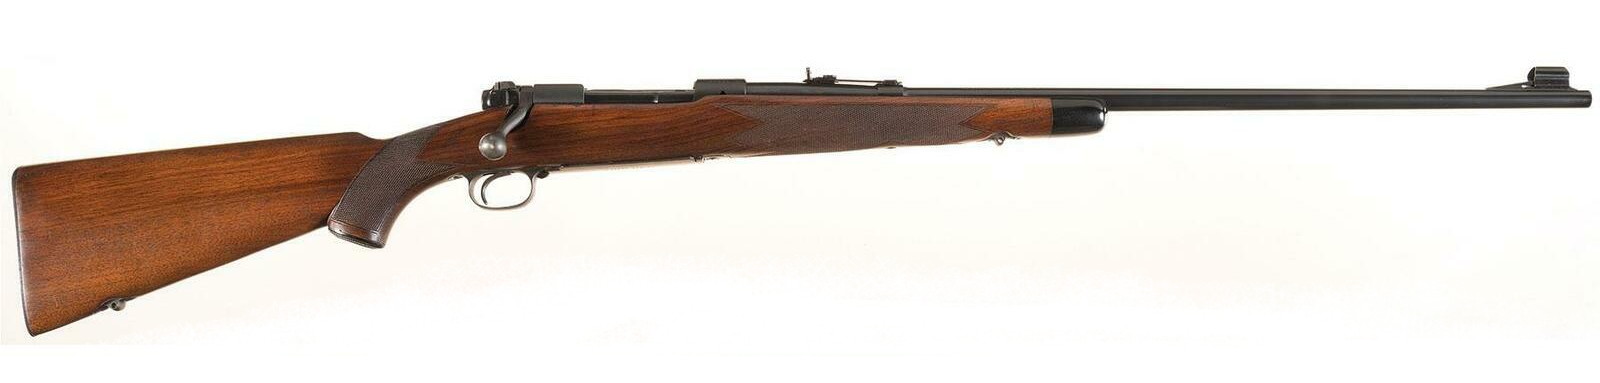 Winchester Model 70 rifle 1930's